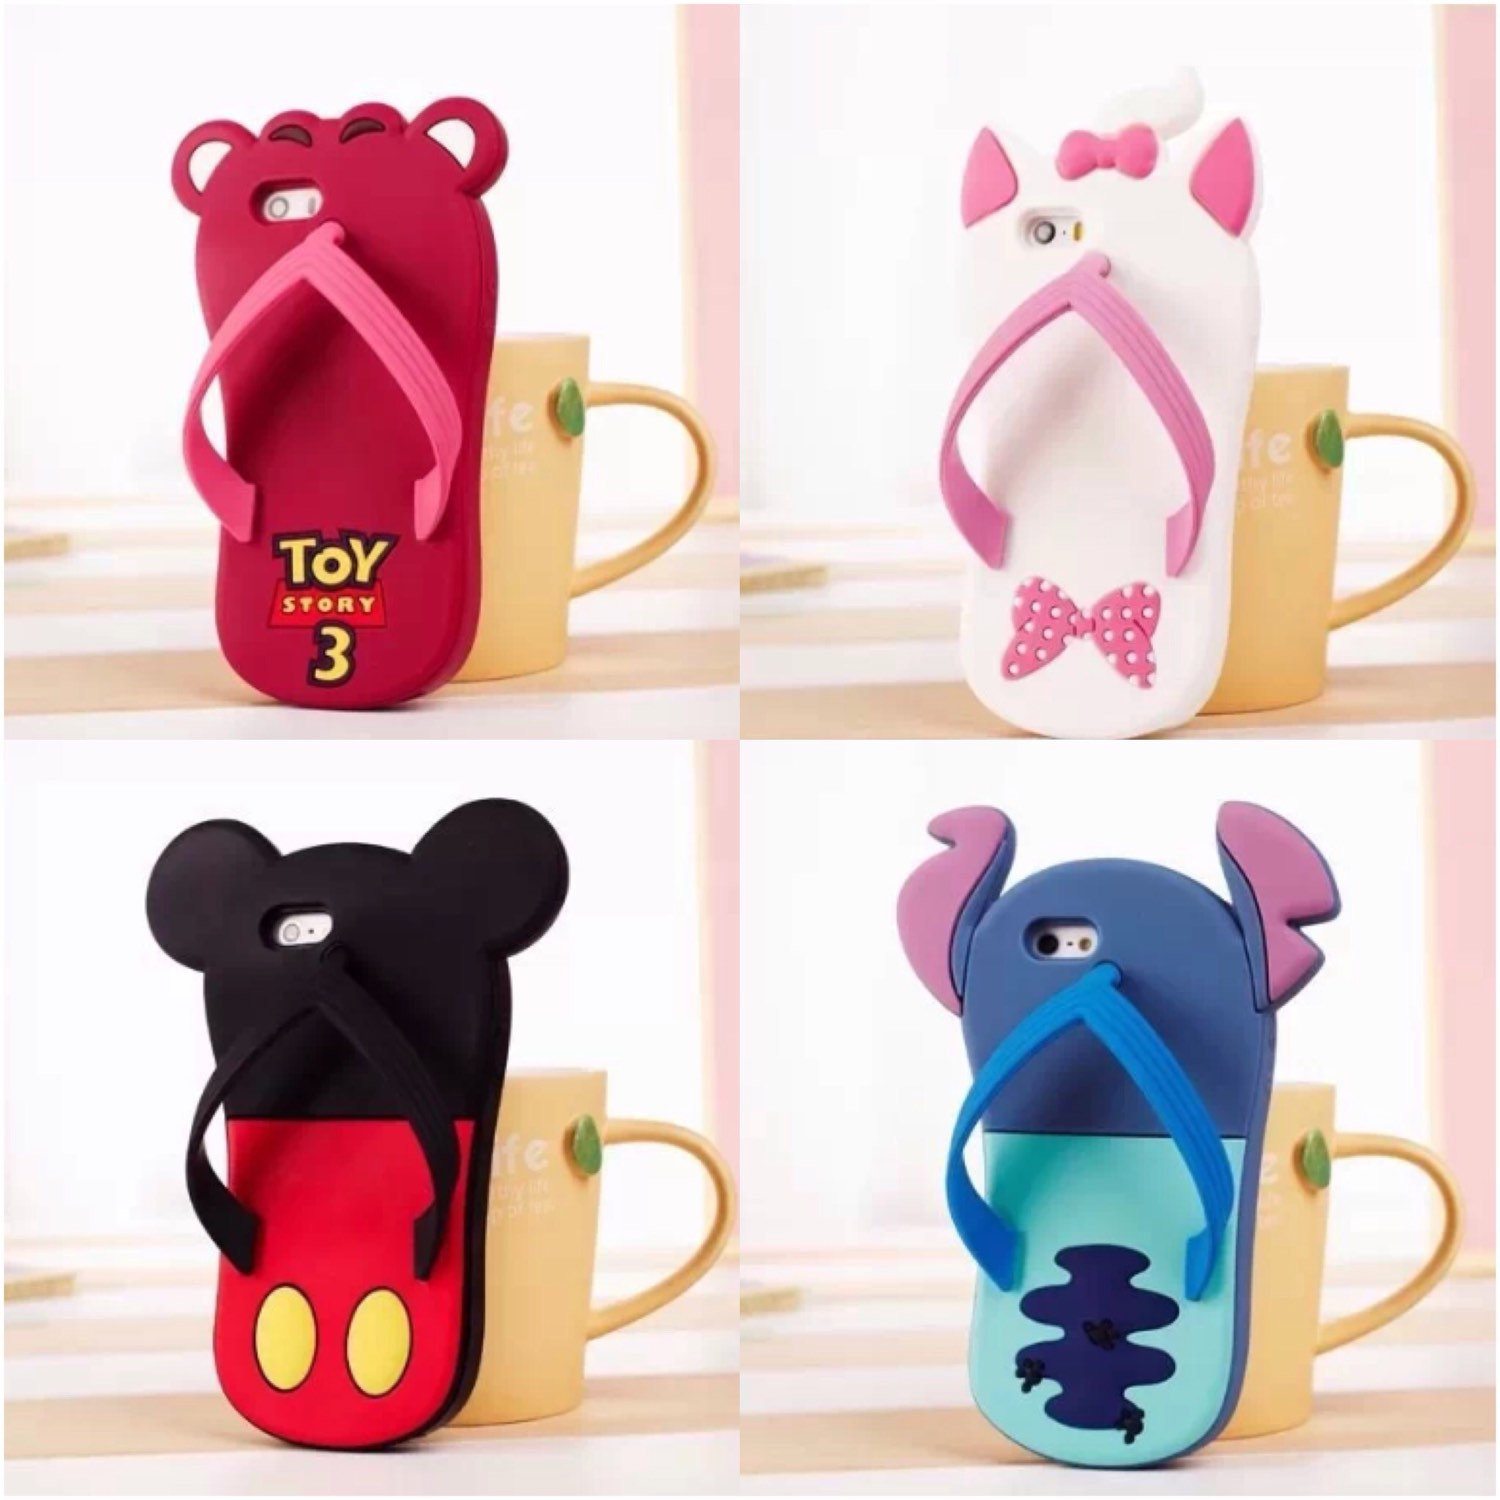 finest selection 74f6d d00b2 Disney Cute Silicone case for Iphone 5/5s/5c